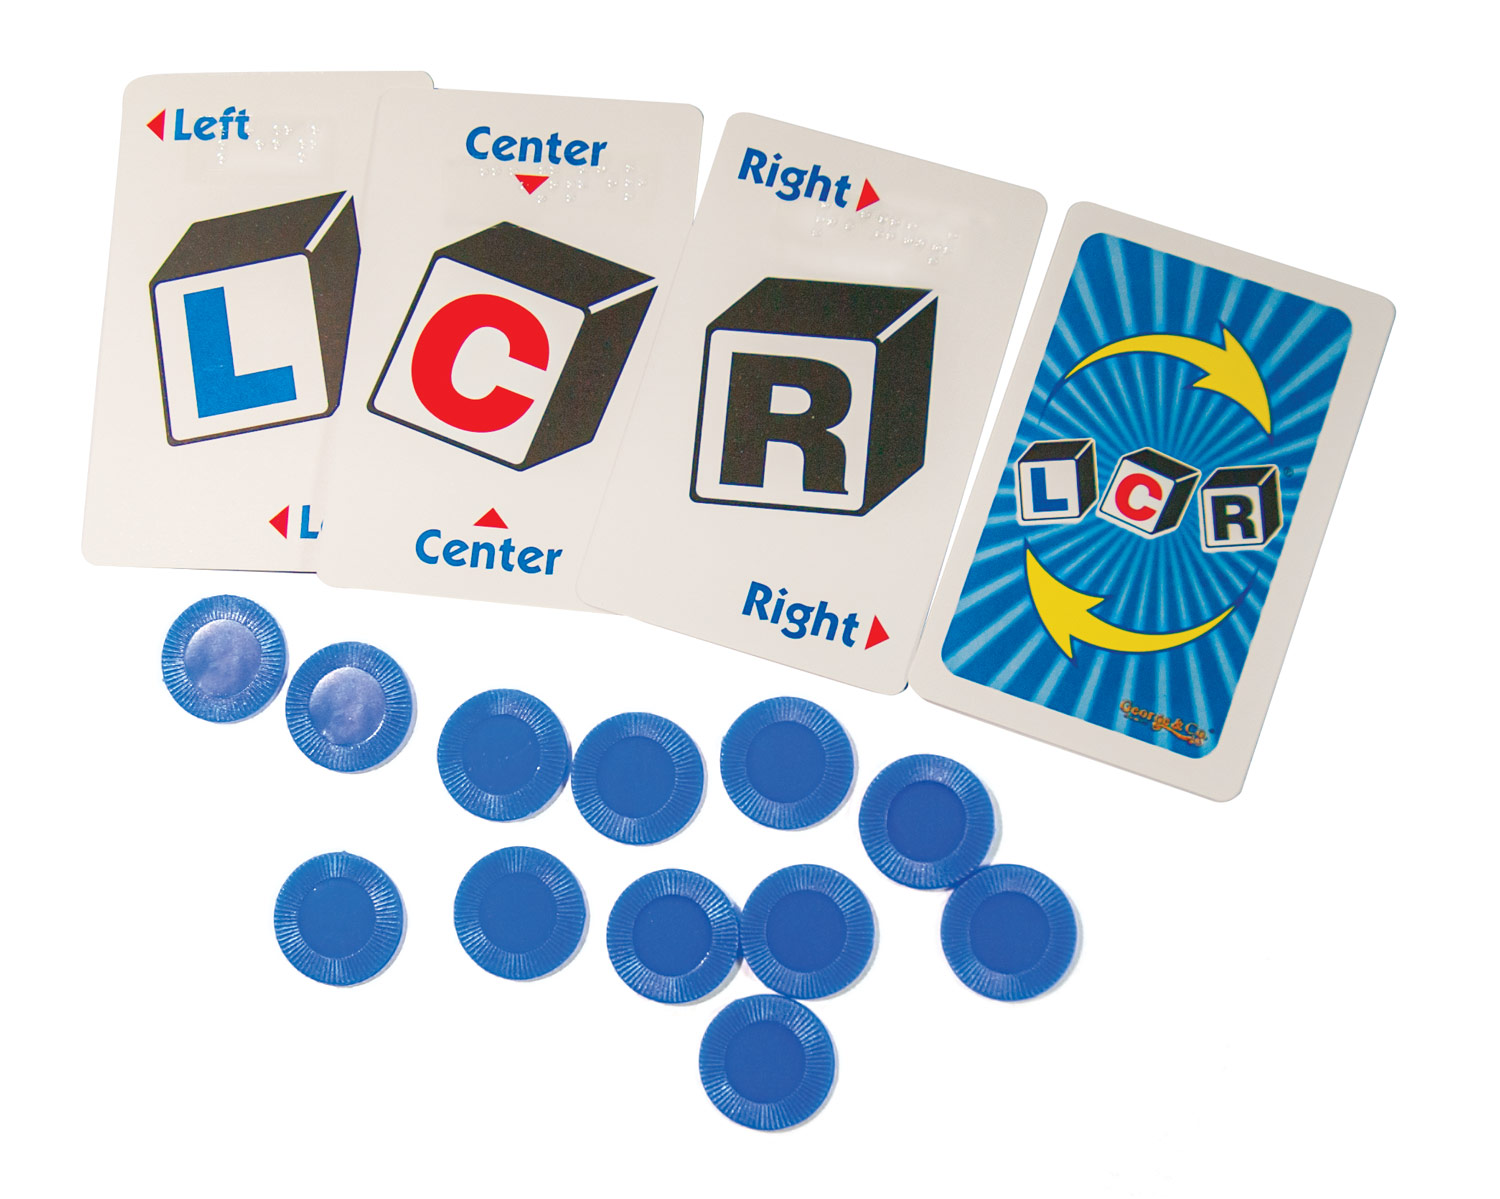 LCR -Left Center Right  Braille Card Game